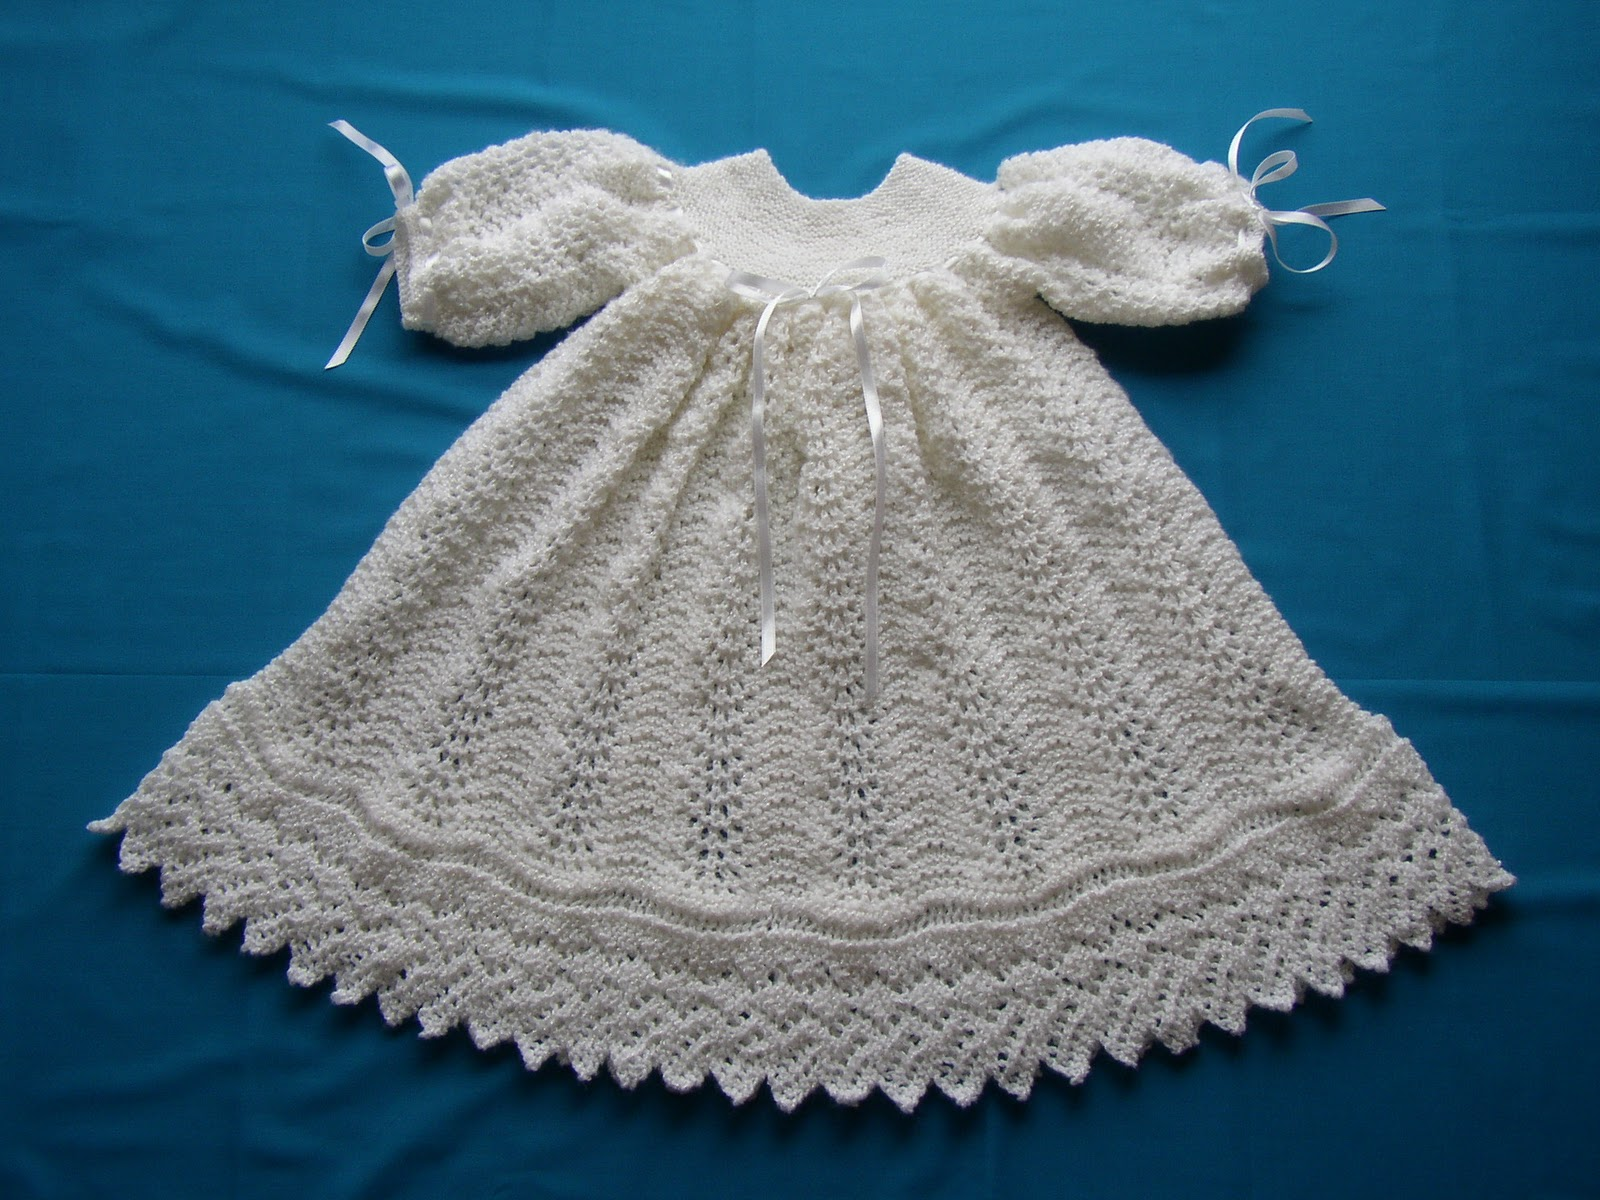 Knitting Pattern For Christening Shawl Free : Nittineedles: Ribbons and Lace Christening Gown